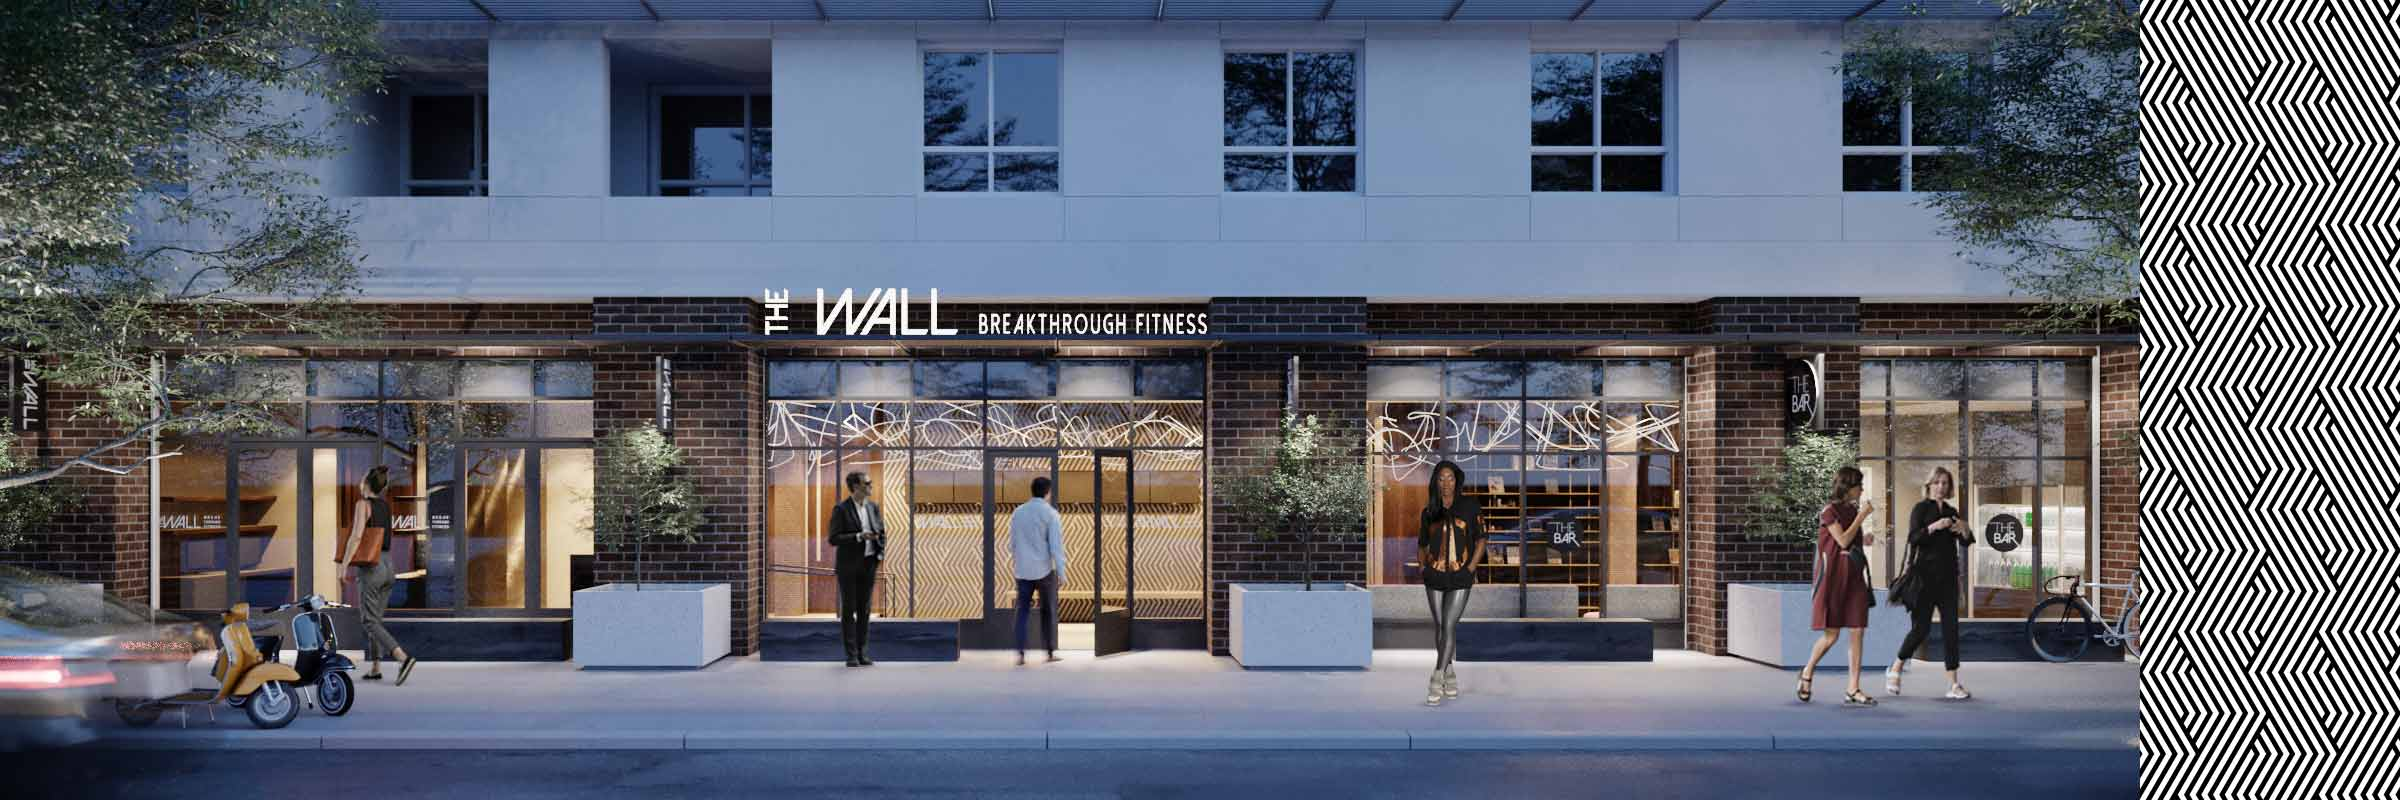 (desktop image link) Visit THE WALL which offers more than just cycling classes near you in Hollywood, combining high intensity circuit training and core exercise.